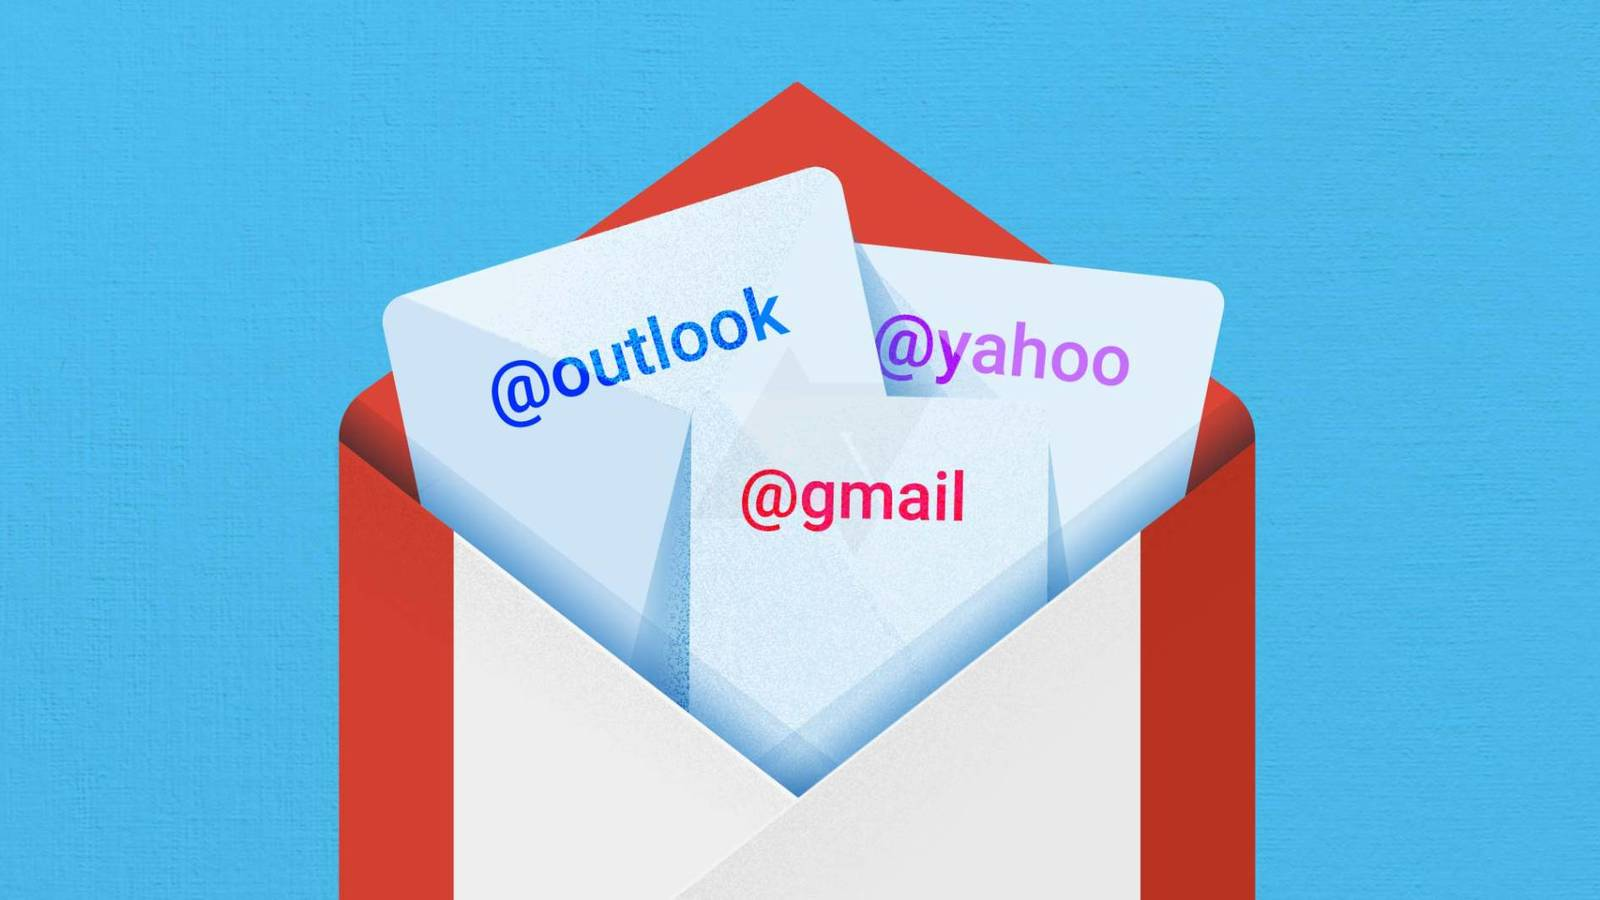 Come configurare Outlook e Hotmail in Gmail 1